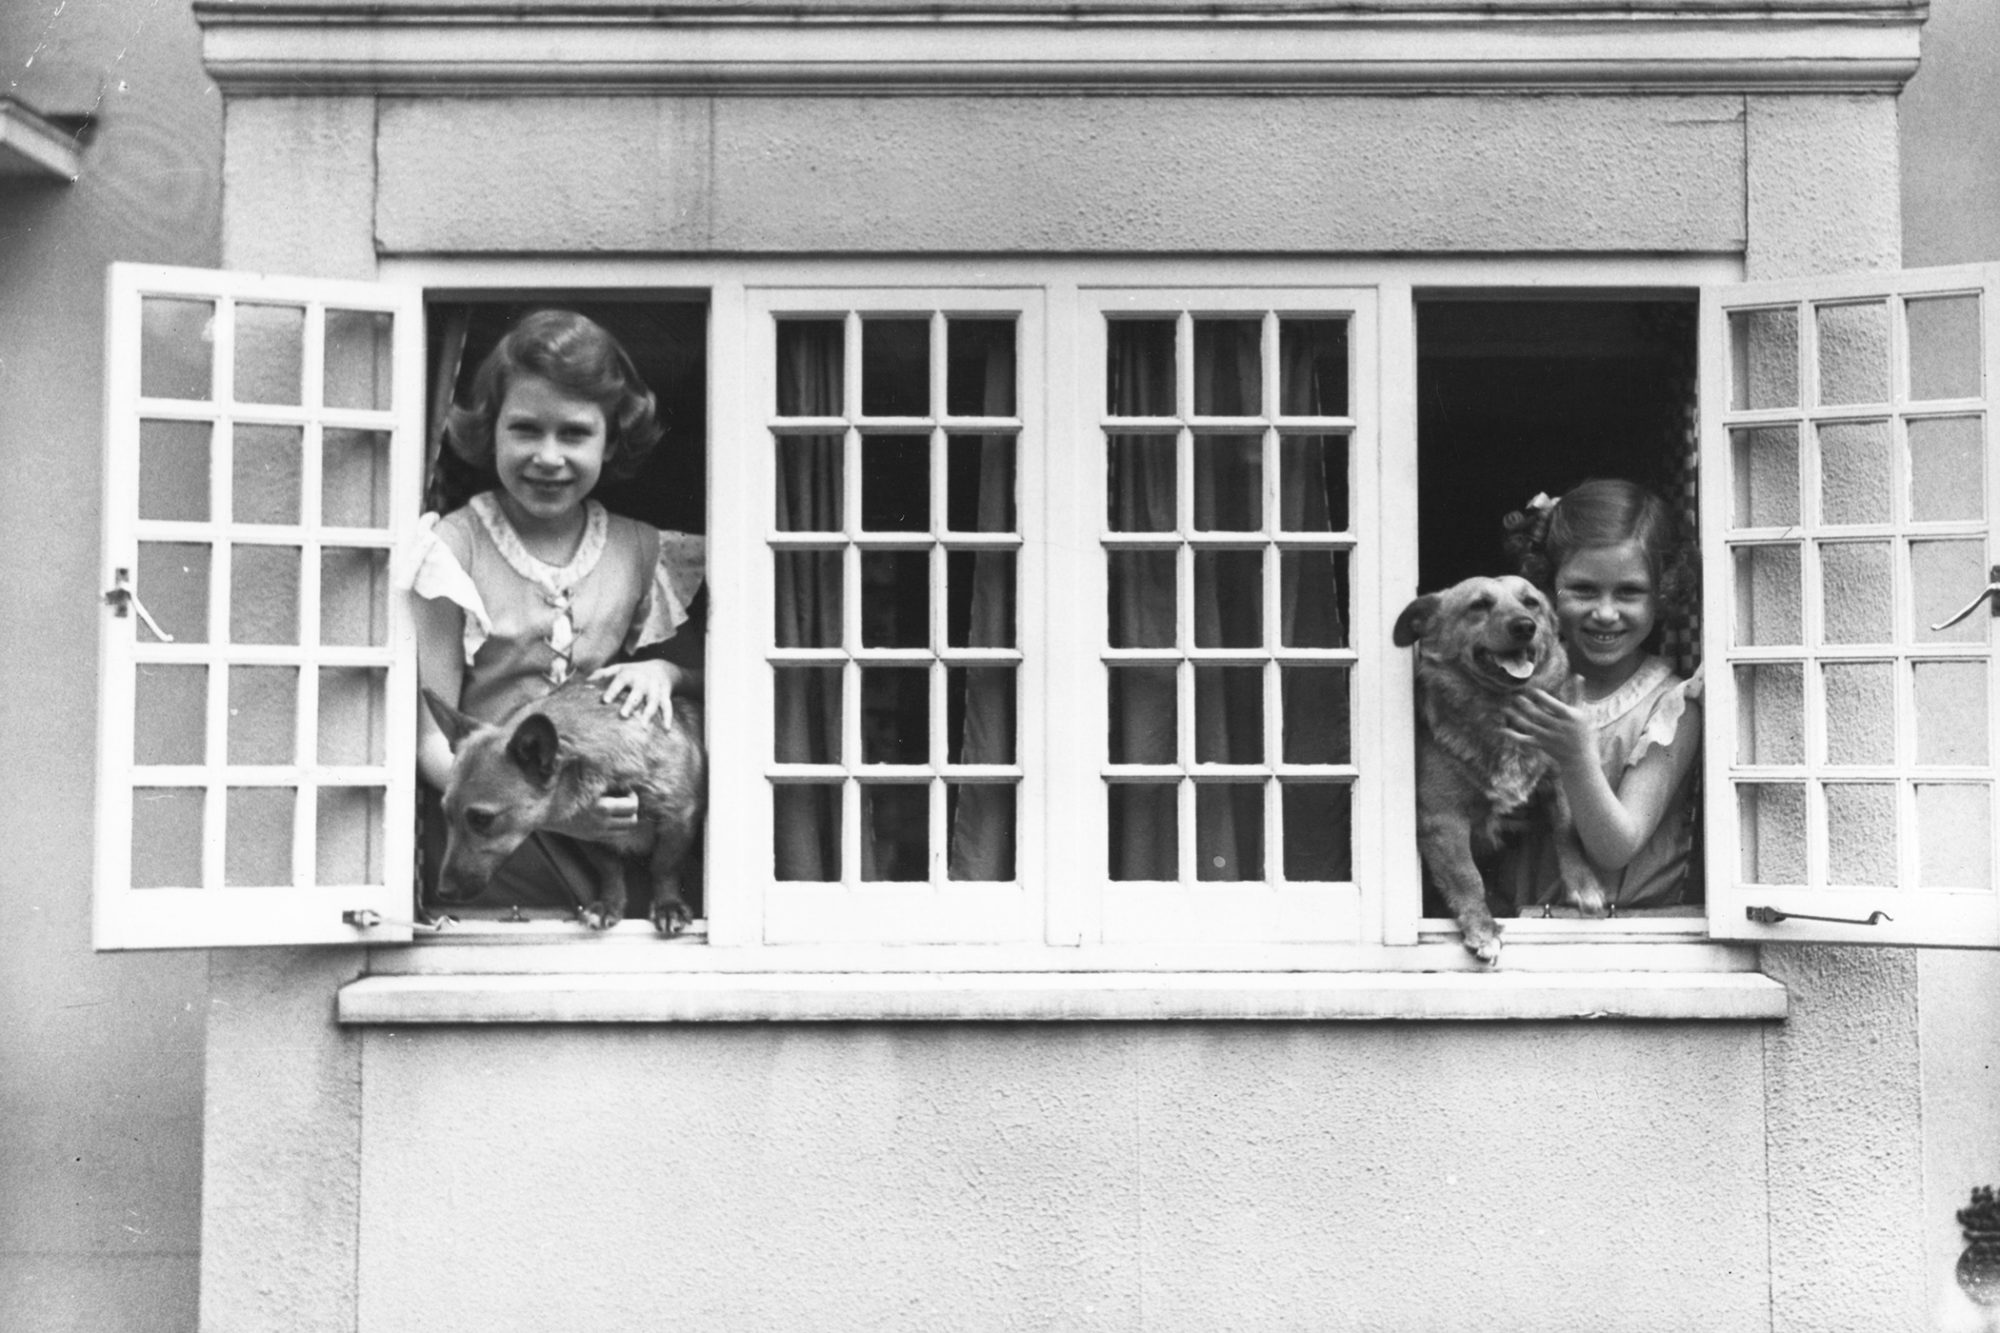 Black and white photo of Princess Elizabeth and other young girl holding dogs on windowsills